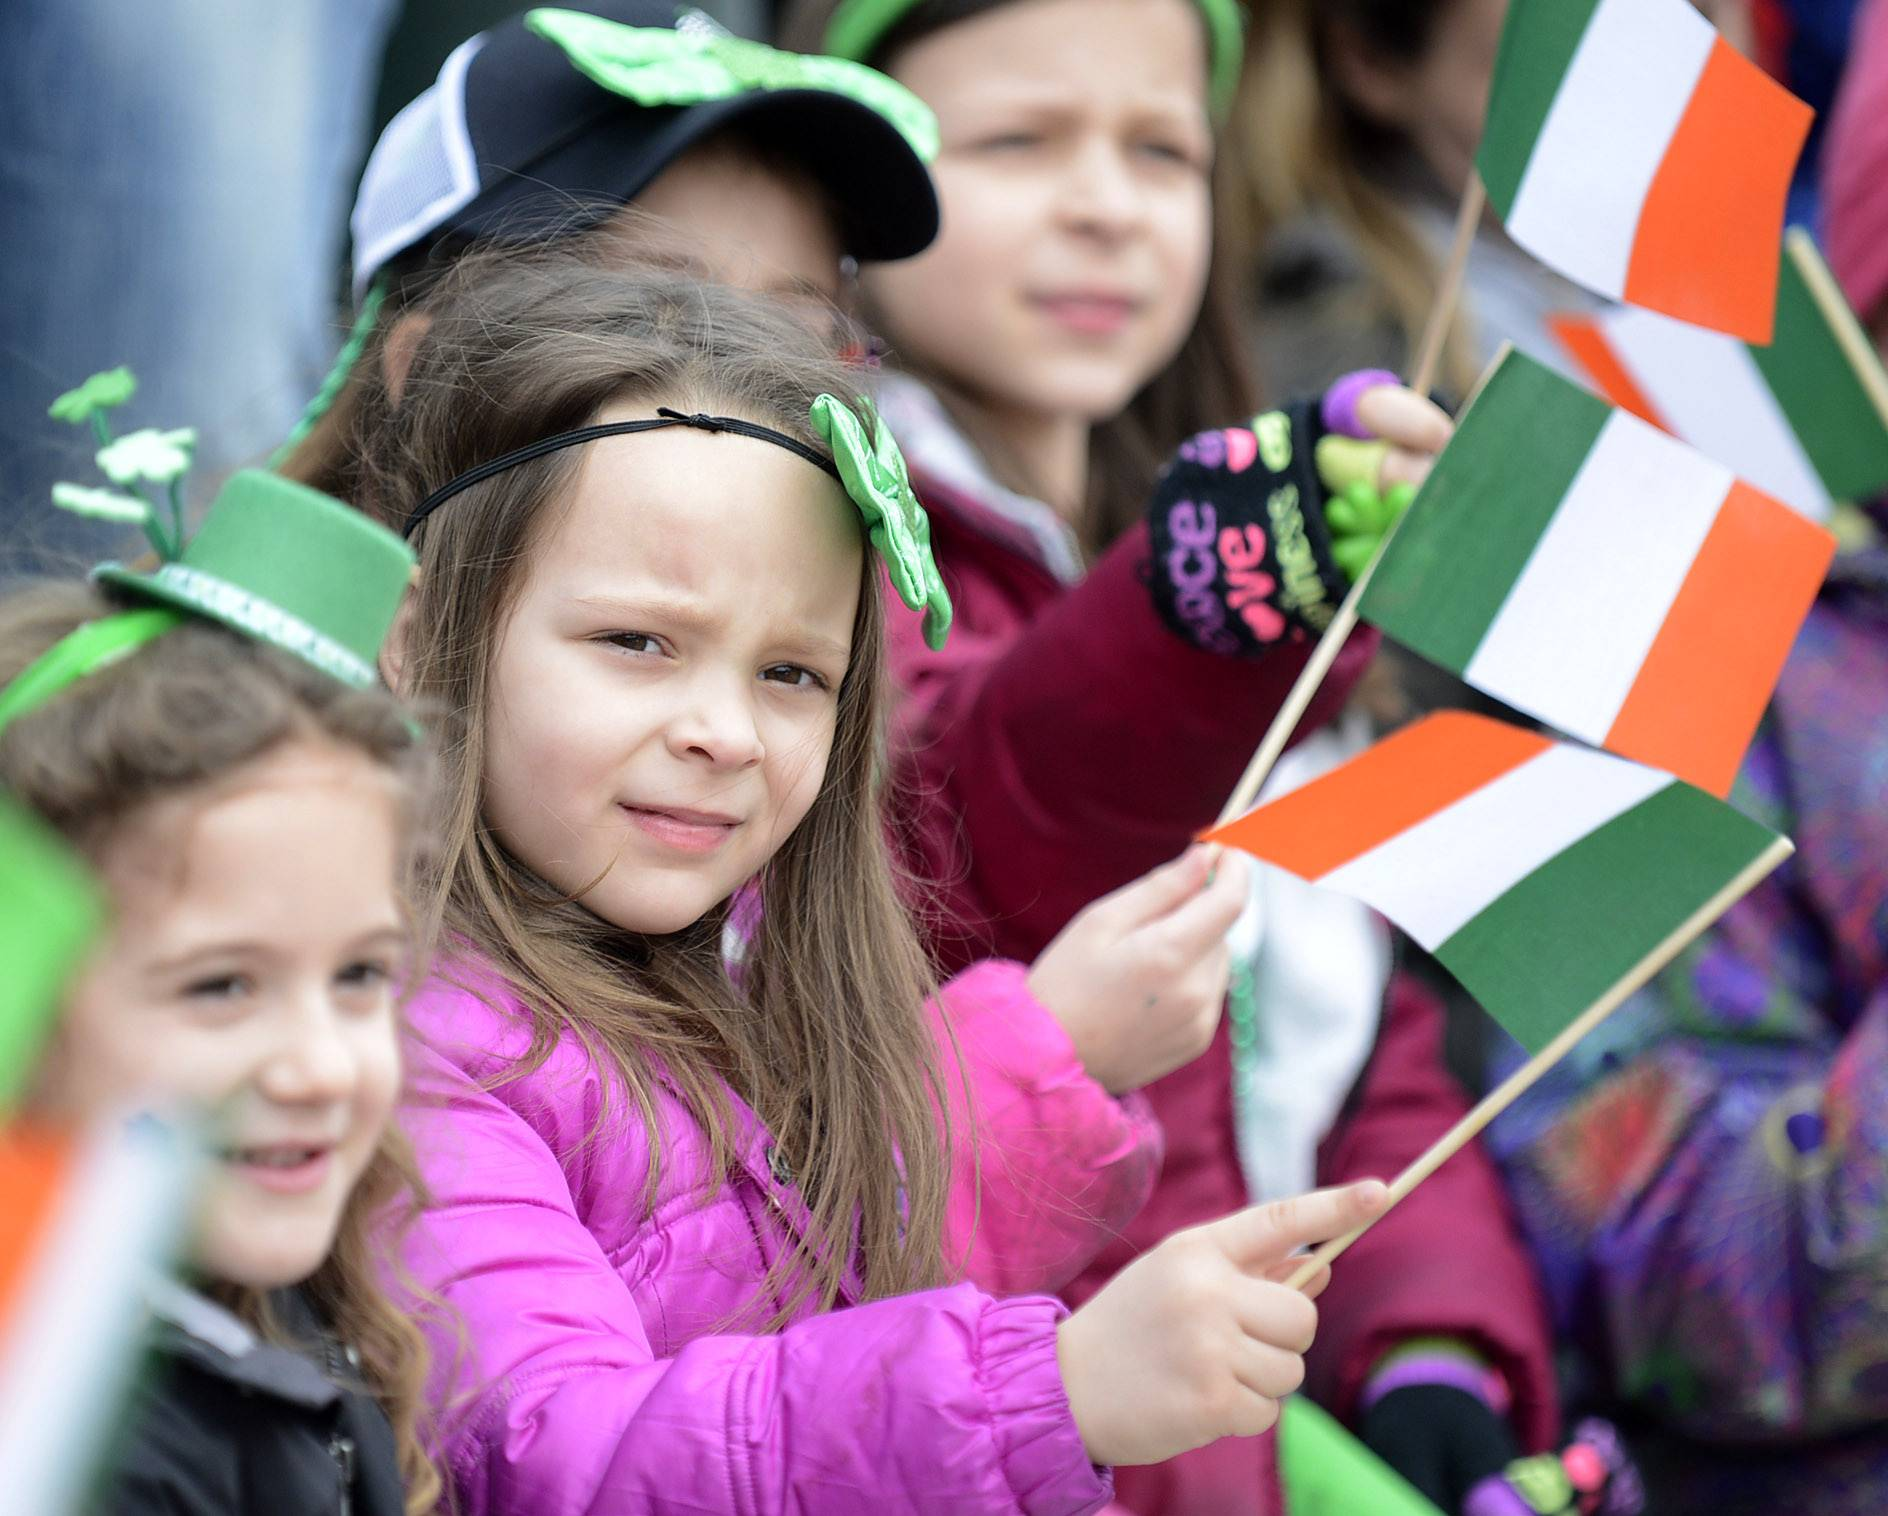 Meghan Manini, 5, of St. Charles watches the St. Patrick's Day parade make its way down Main Street in St. Charles on Saturday.